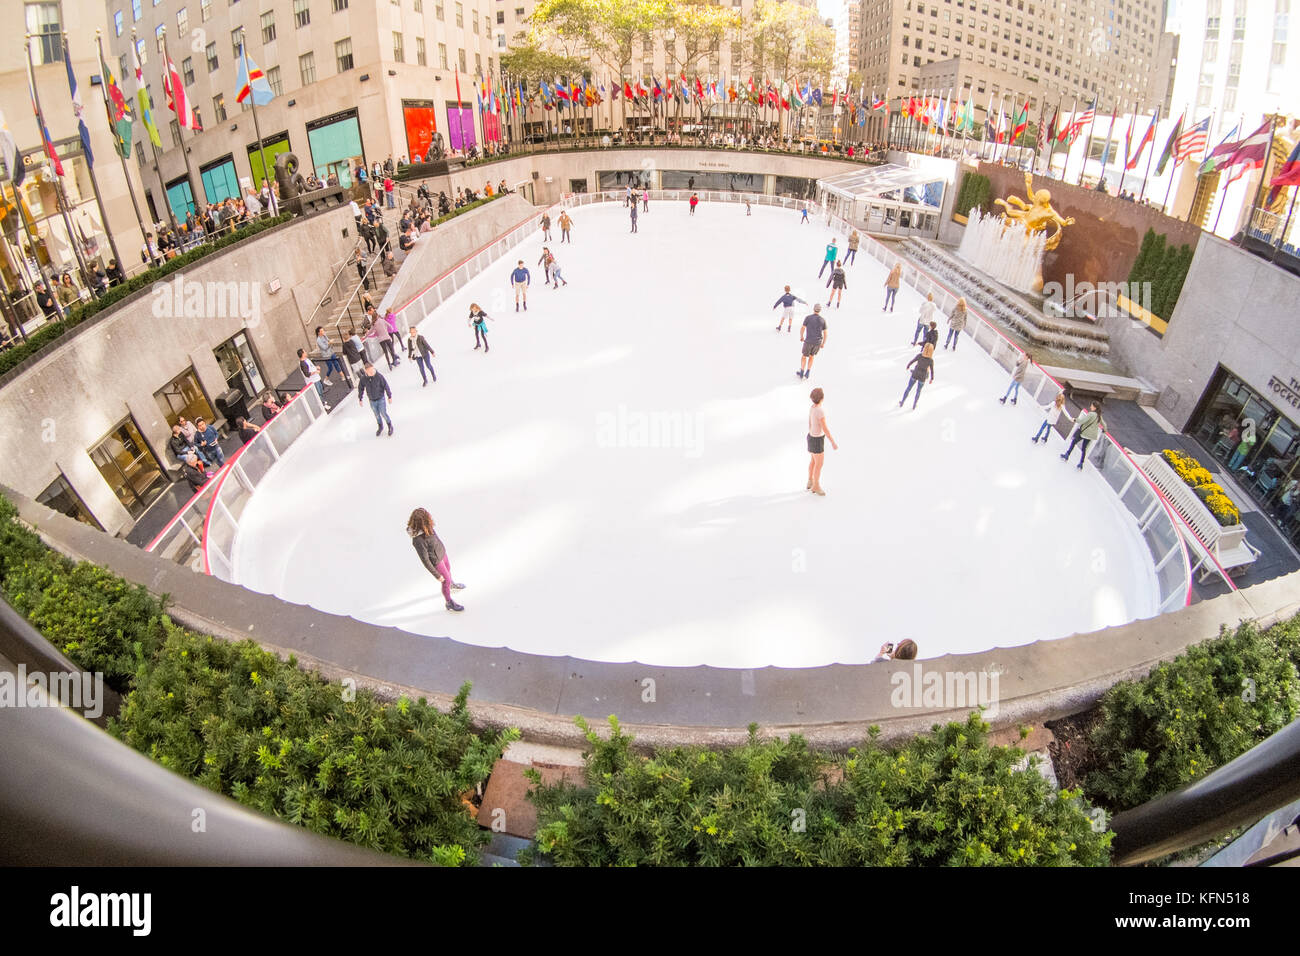 Rockefeller Center ice-skating rink in Midtown Manhattan in New York City, NY, United States of America, U.S.A - Stock Image